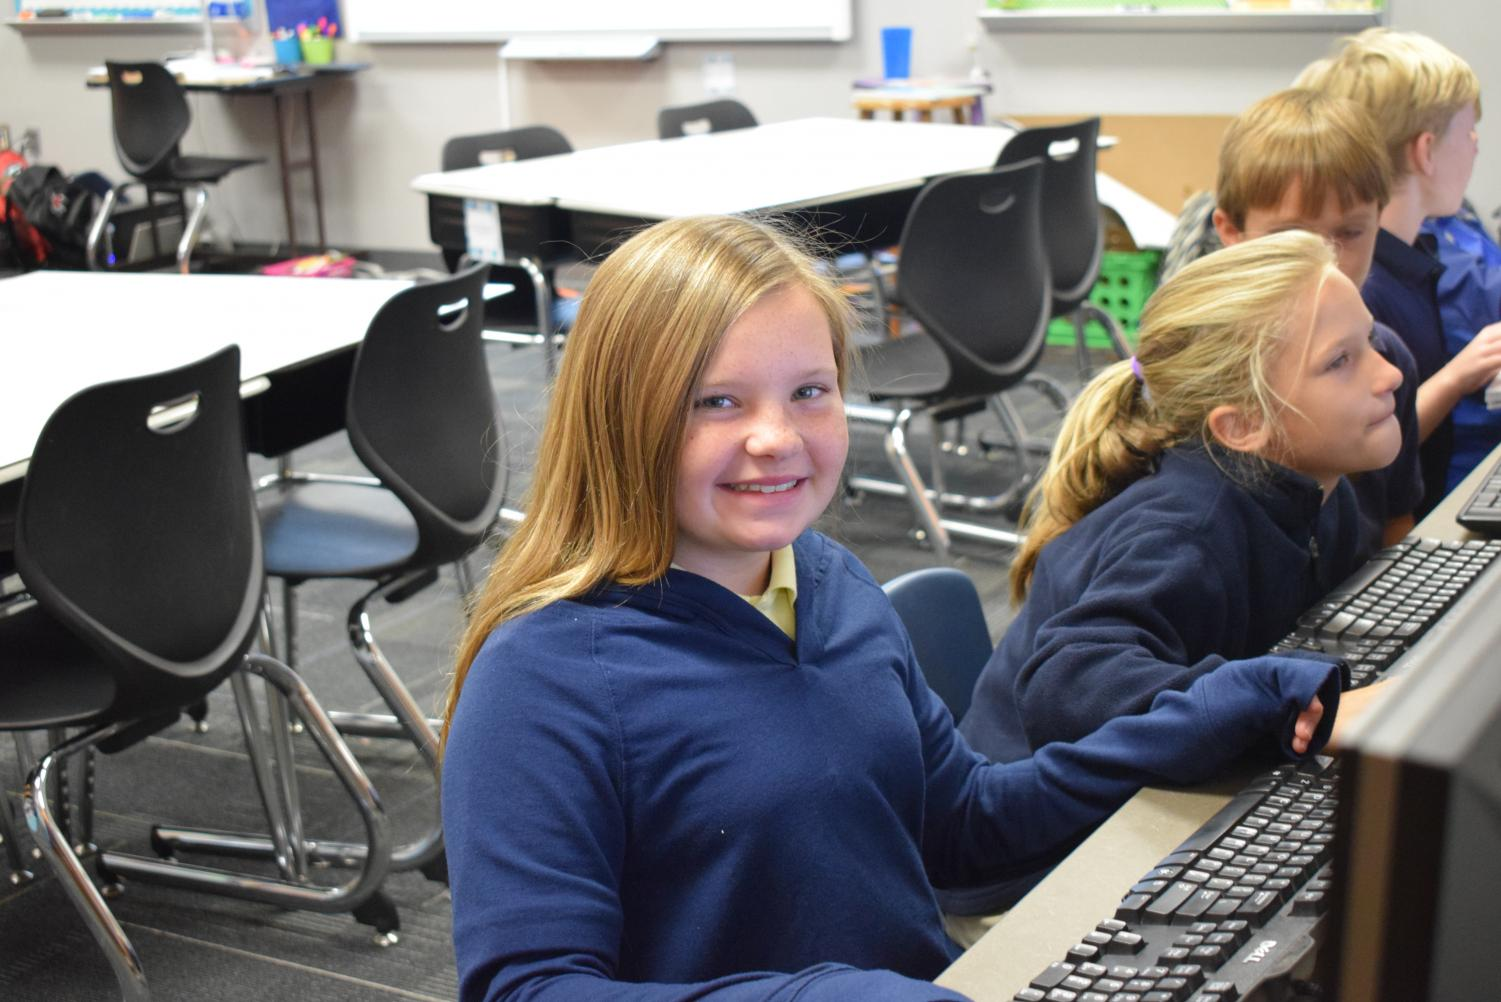 Katy Brust, whose home and school were damaged in Hurricane Michael, is attending classes in the lower school